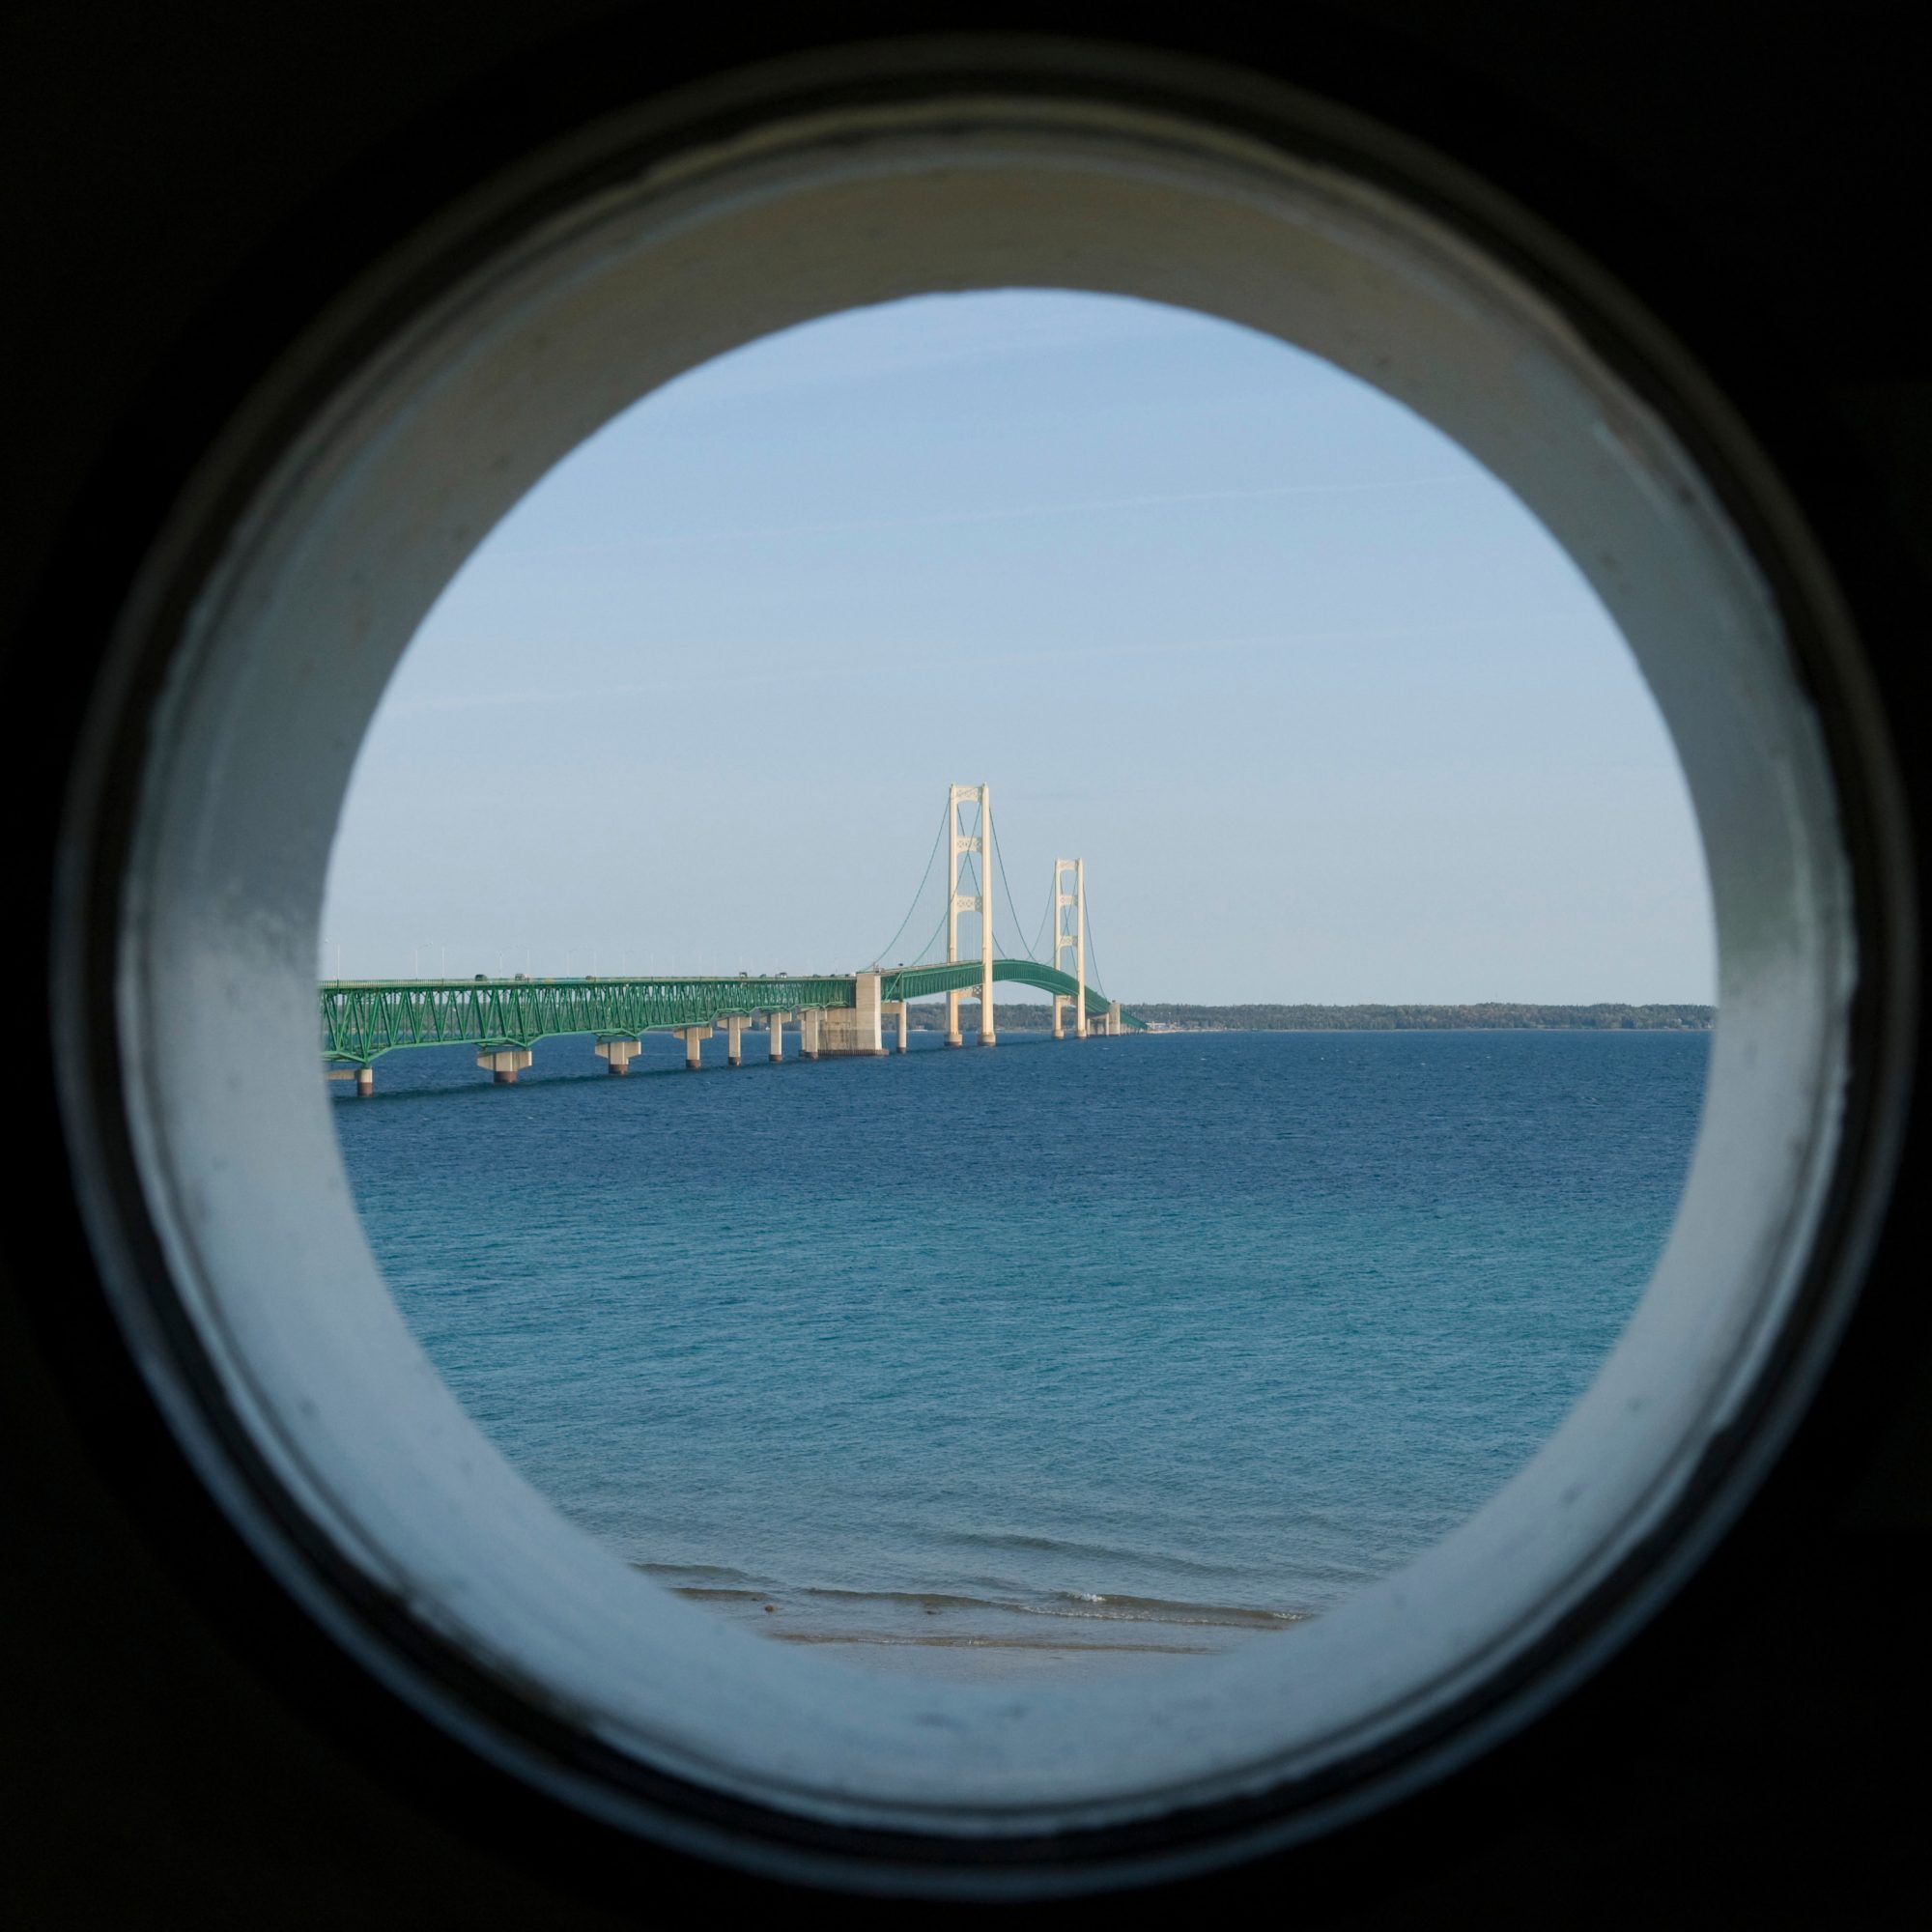 """The """"Mighty Mac"""" suspension bridge, an engineering wonder, stretches 5 miles across the Straits of Mackinac. At Bridge View Park in St. Ignace, you can get terrific Mackinac Island bridge views with paths, picnic areas and interpretive center."""